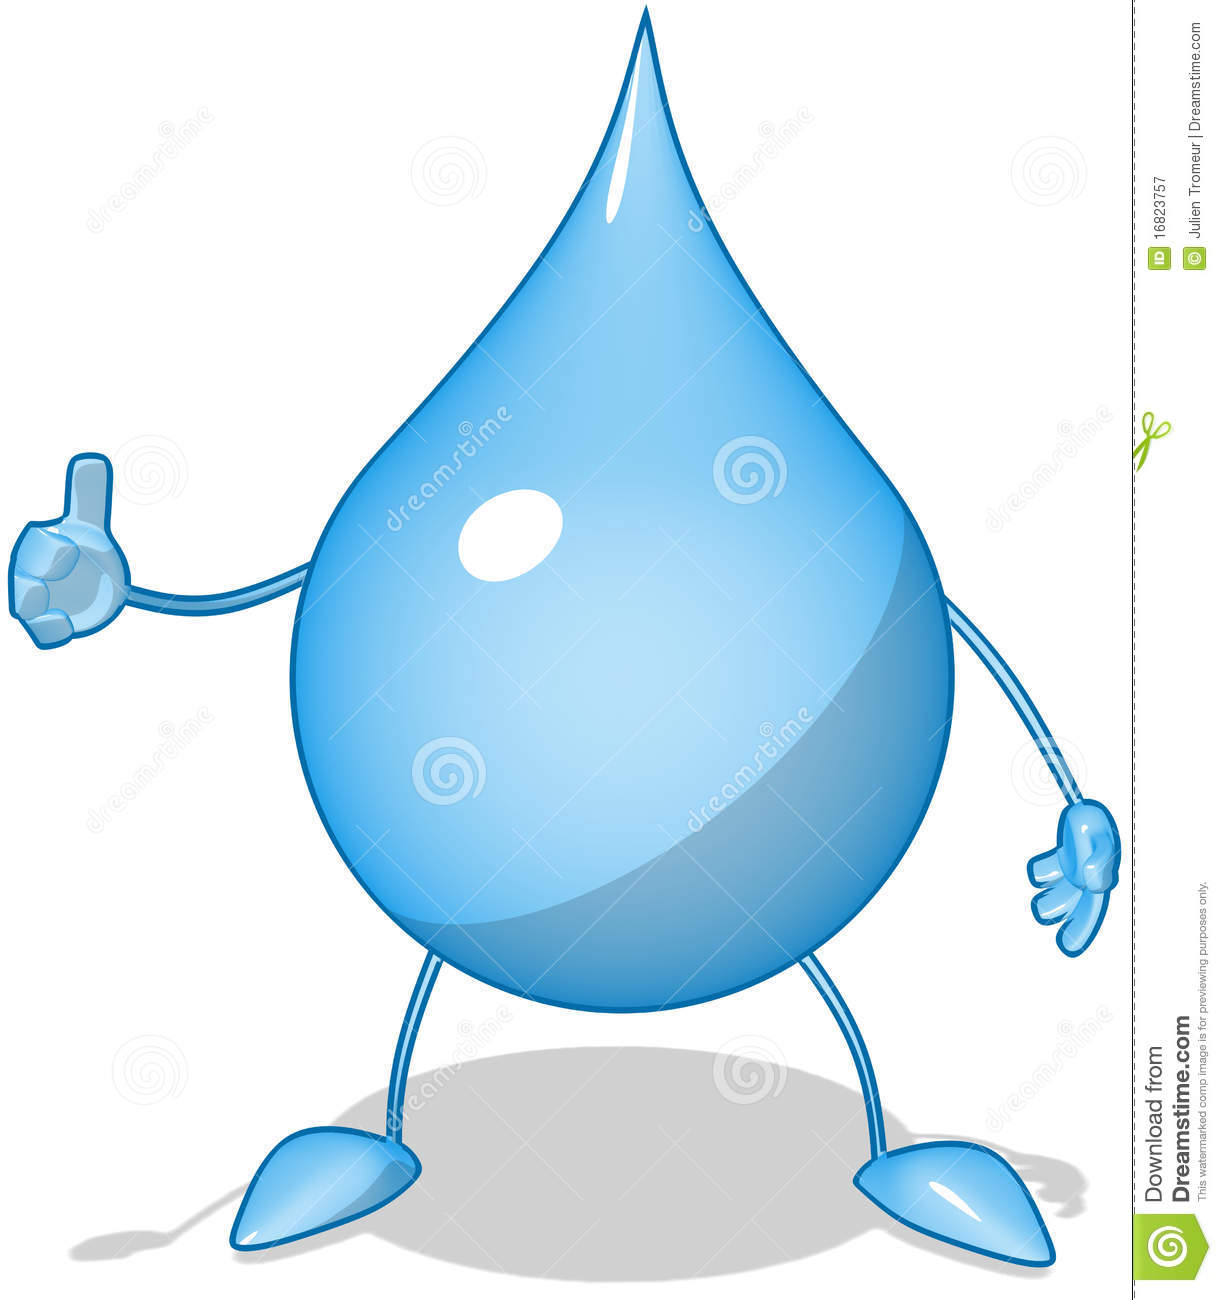 Water drop stock illustration  Illustration of concept - 16823757